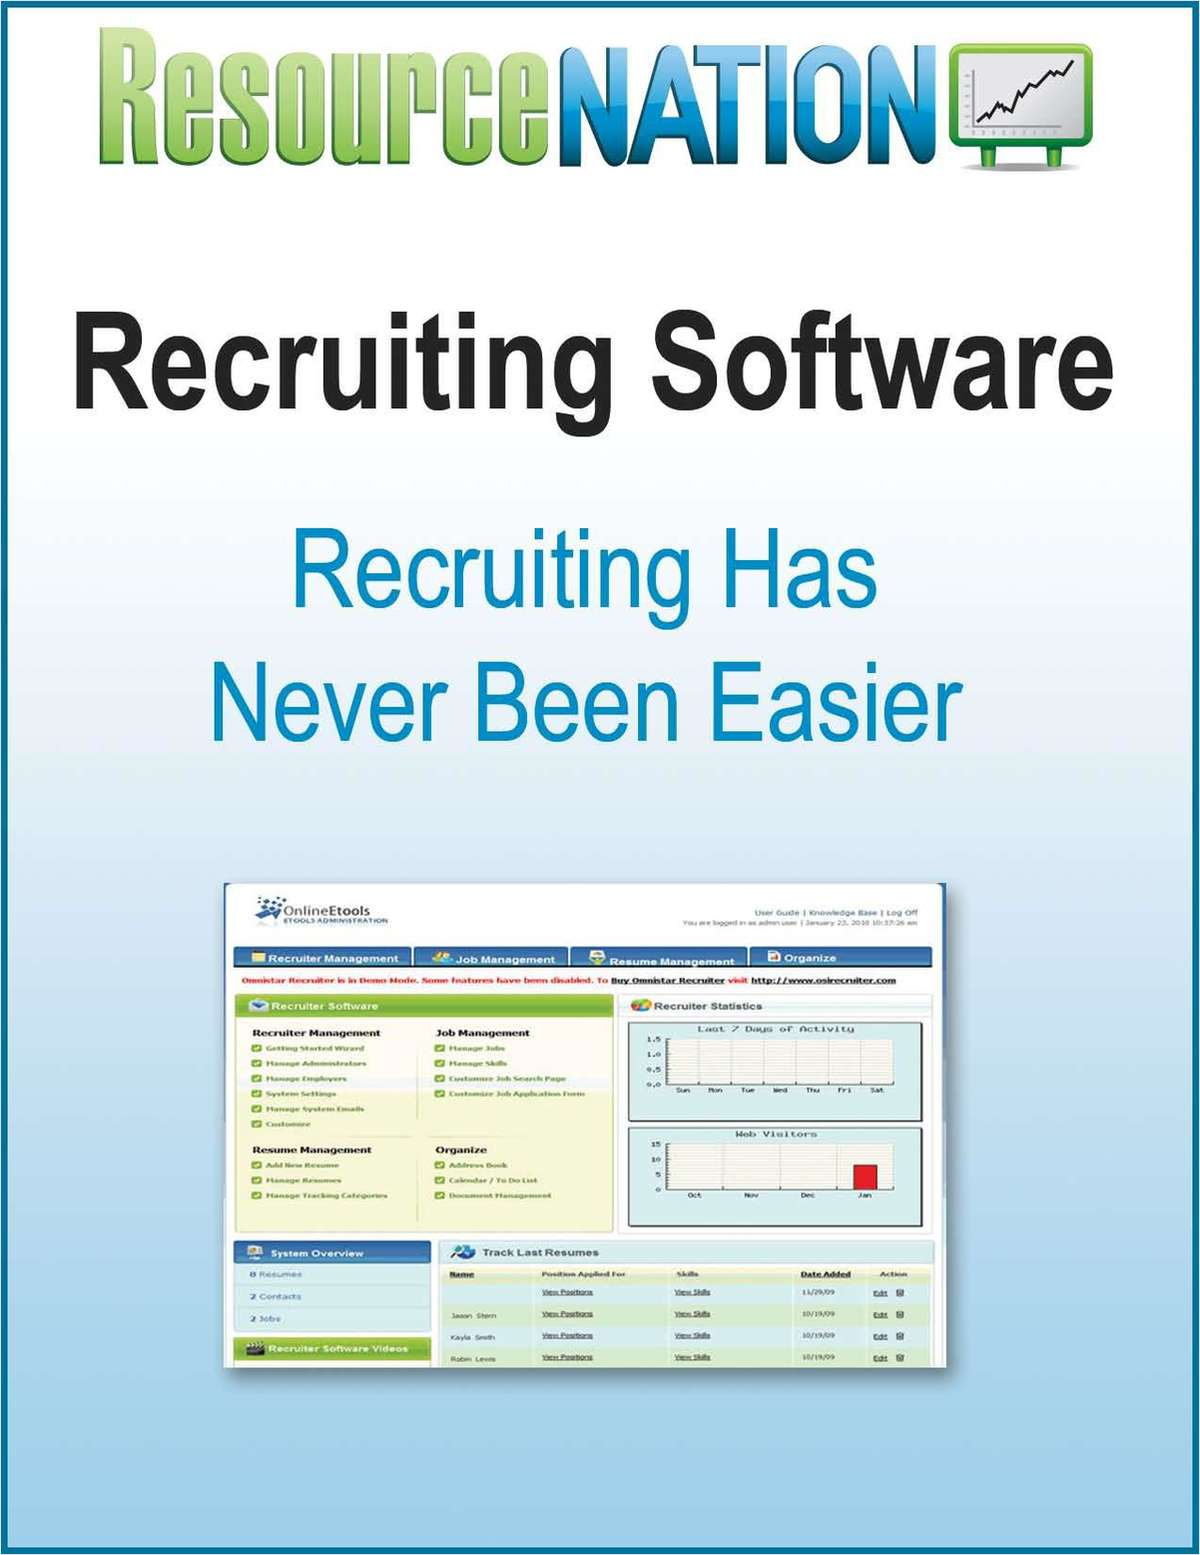 How to Improve the Speed & Quality of Talent Acquisition With a Robust Recruiting Software System